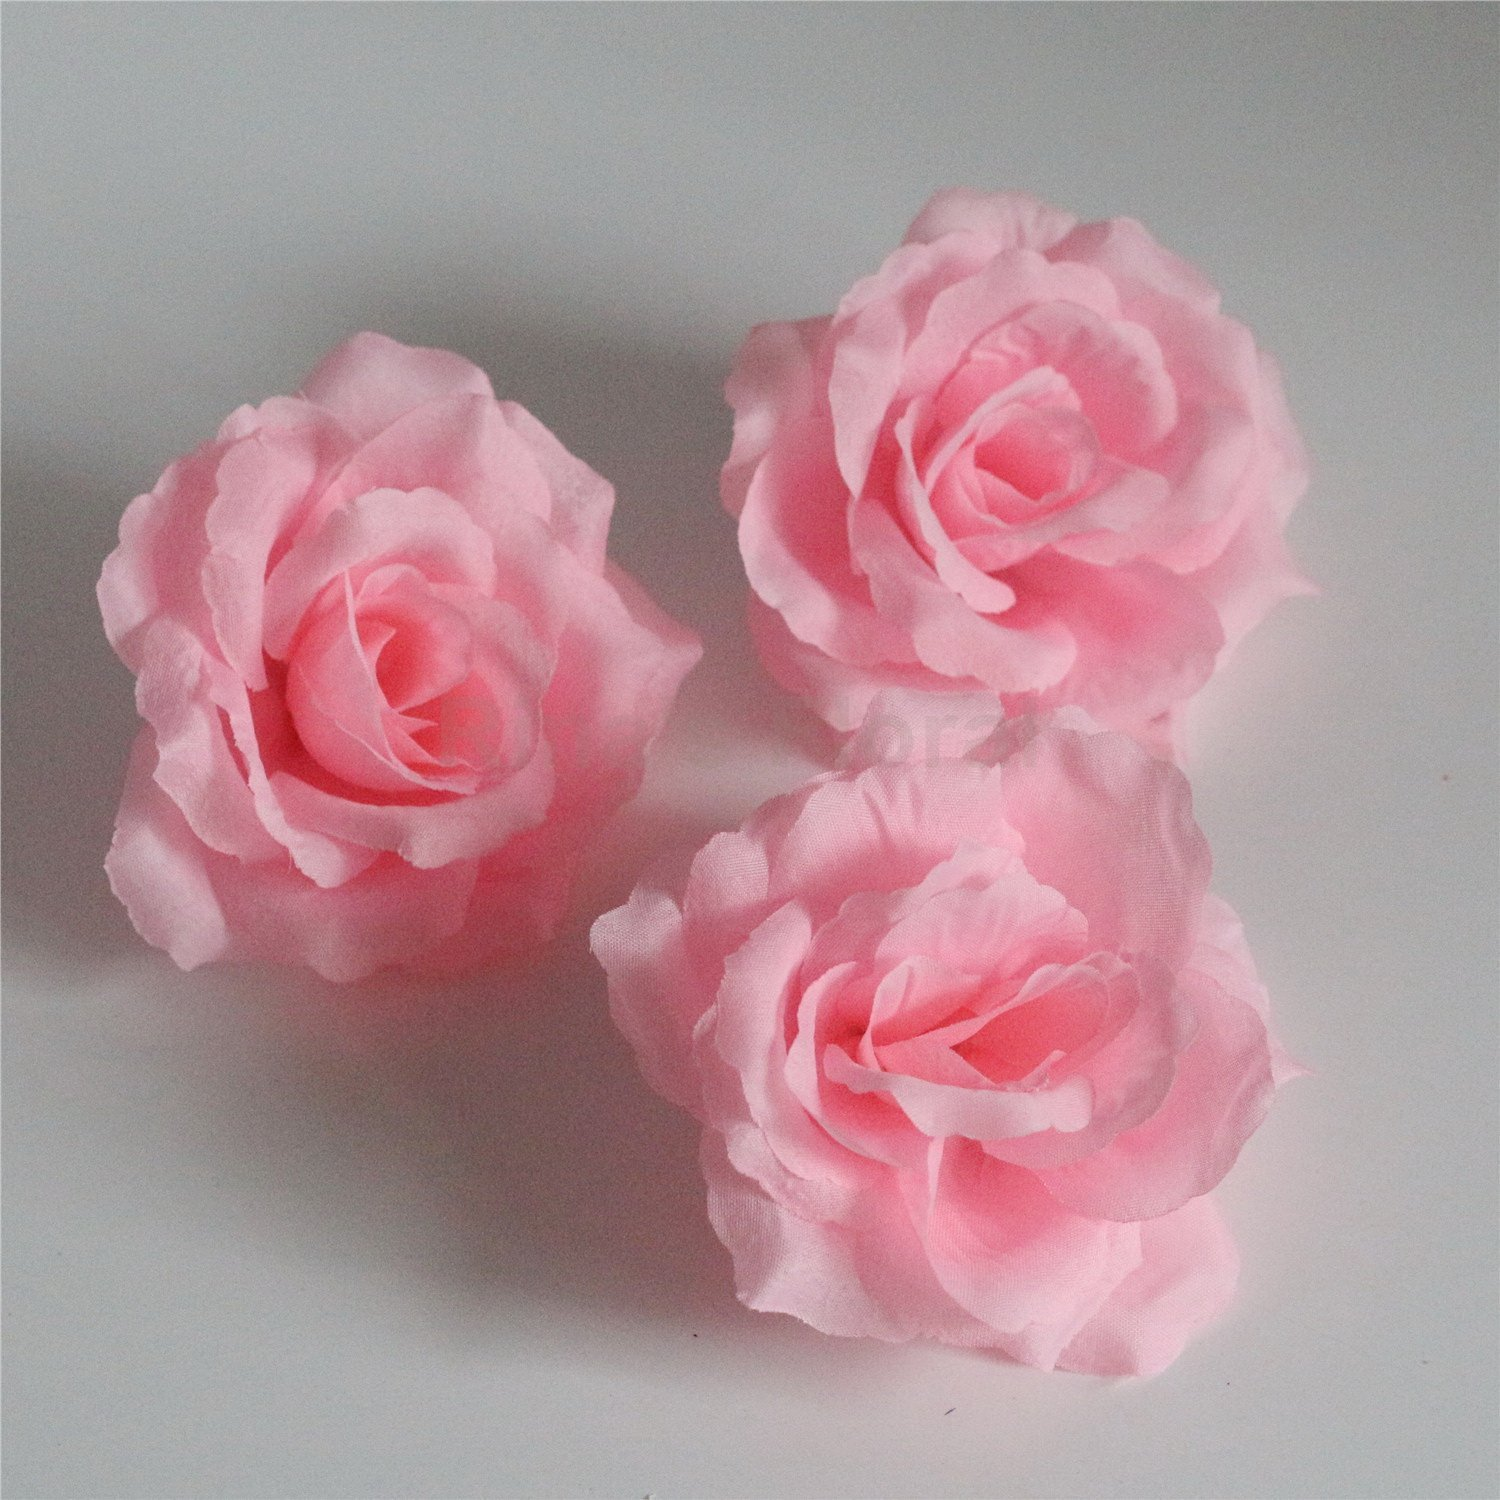 Cheap bulk silk flower heads find bulk silk flower heads deals on silk flowers wholesale 100 artificial silk rose heads bulk flowers 10cm for flower wall kissing balls izmirmasajfo